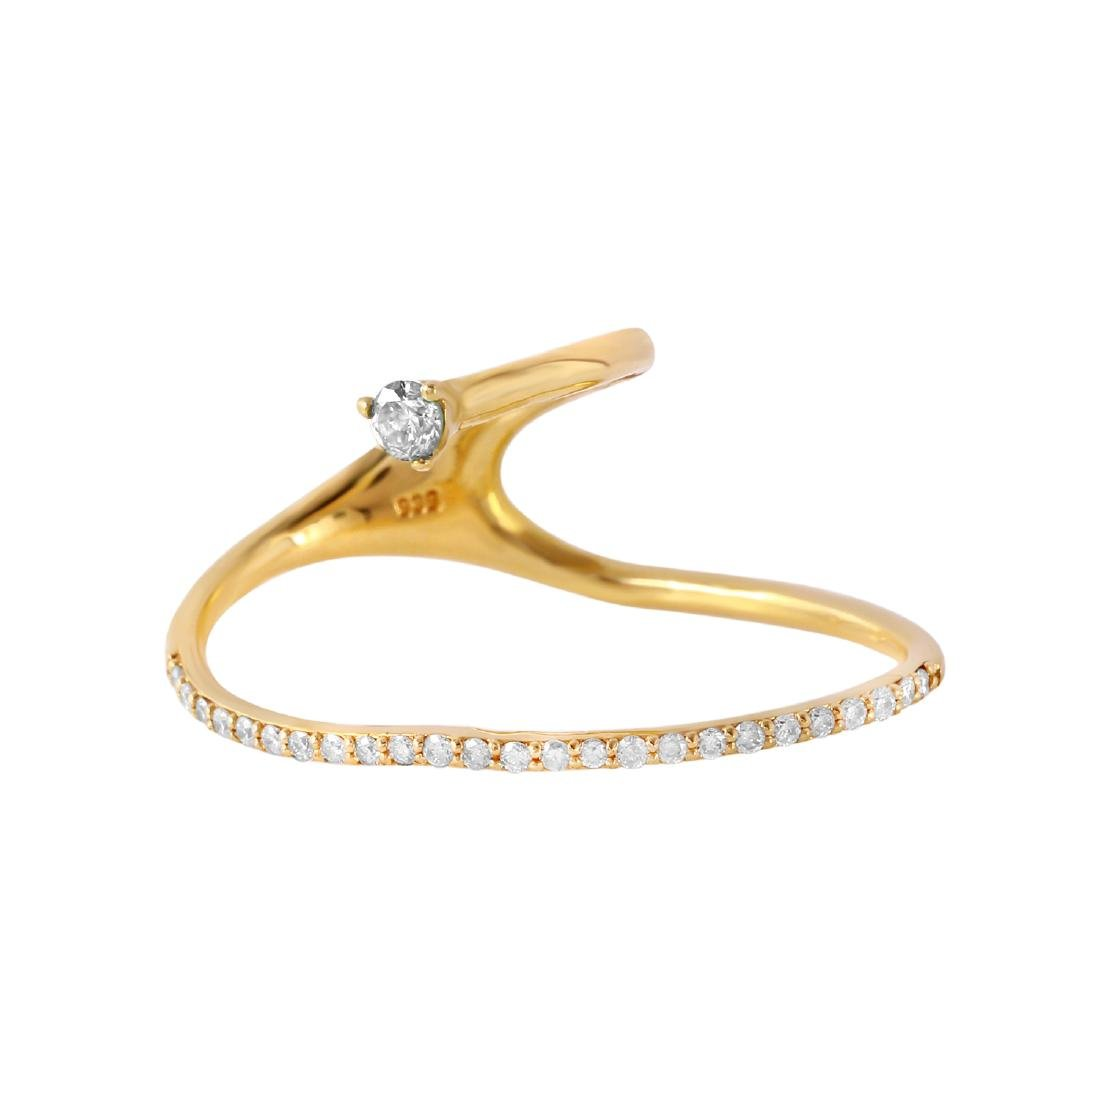 0.25 Carat Natural Diamond 18K Solid Yellow Gold Ring - 2